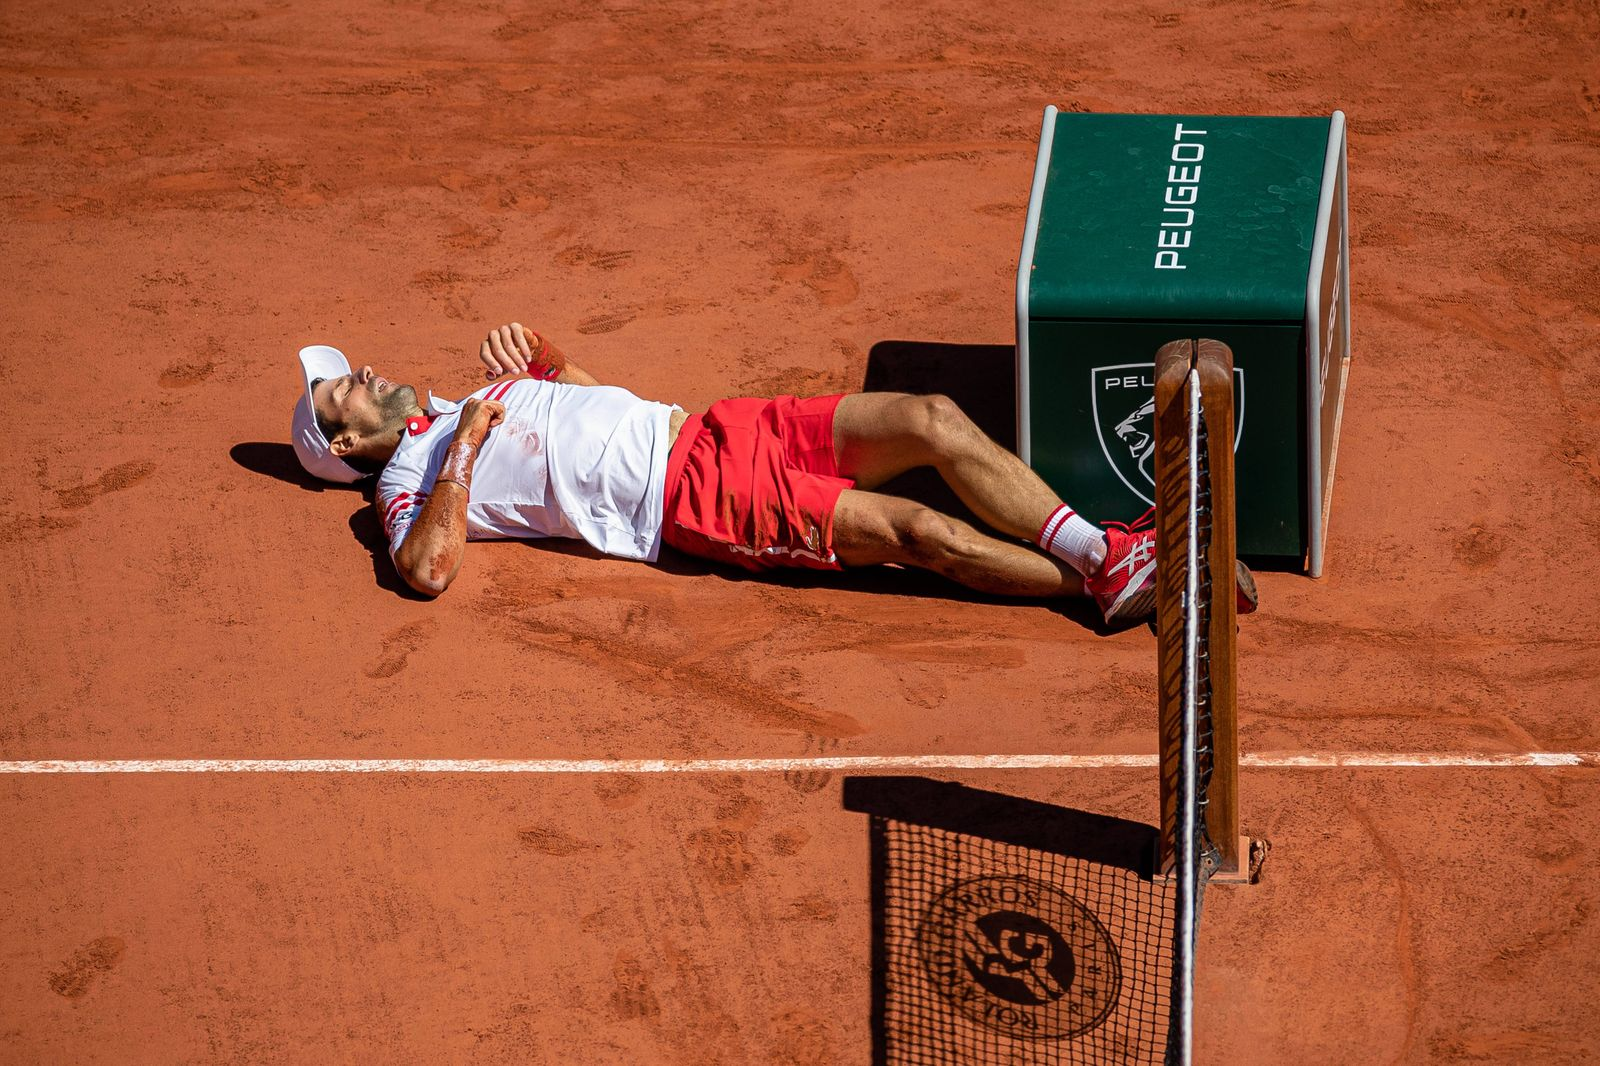 Novak DJOKOVIC of Serbia falls to the ground during his men s single against Stefanos TSITSIPAS of Greece on the Men s